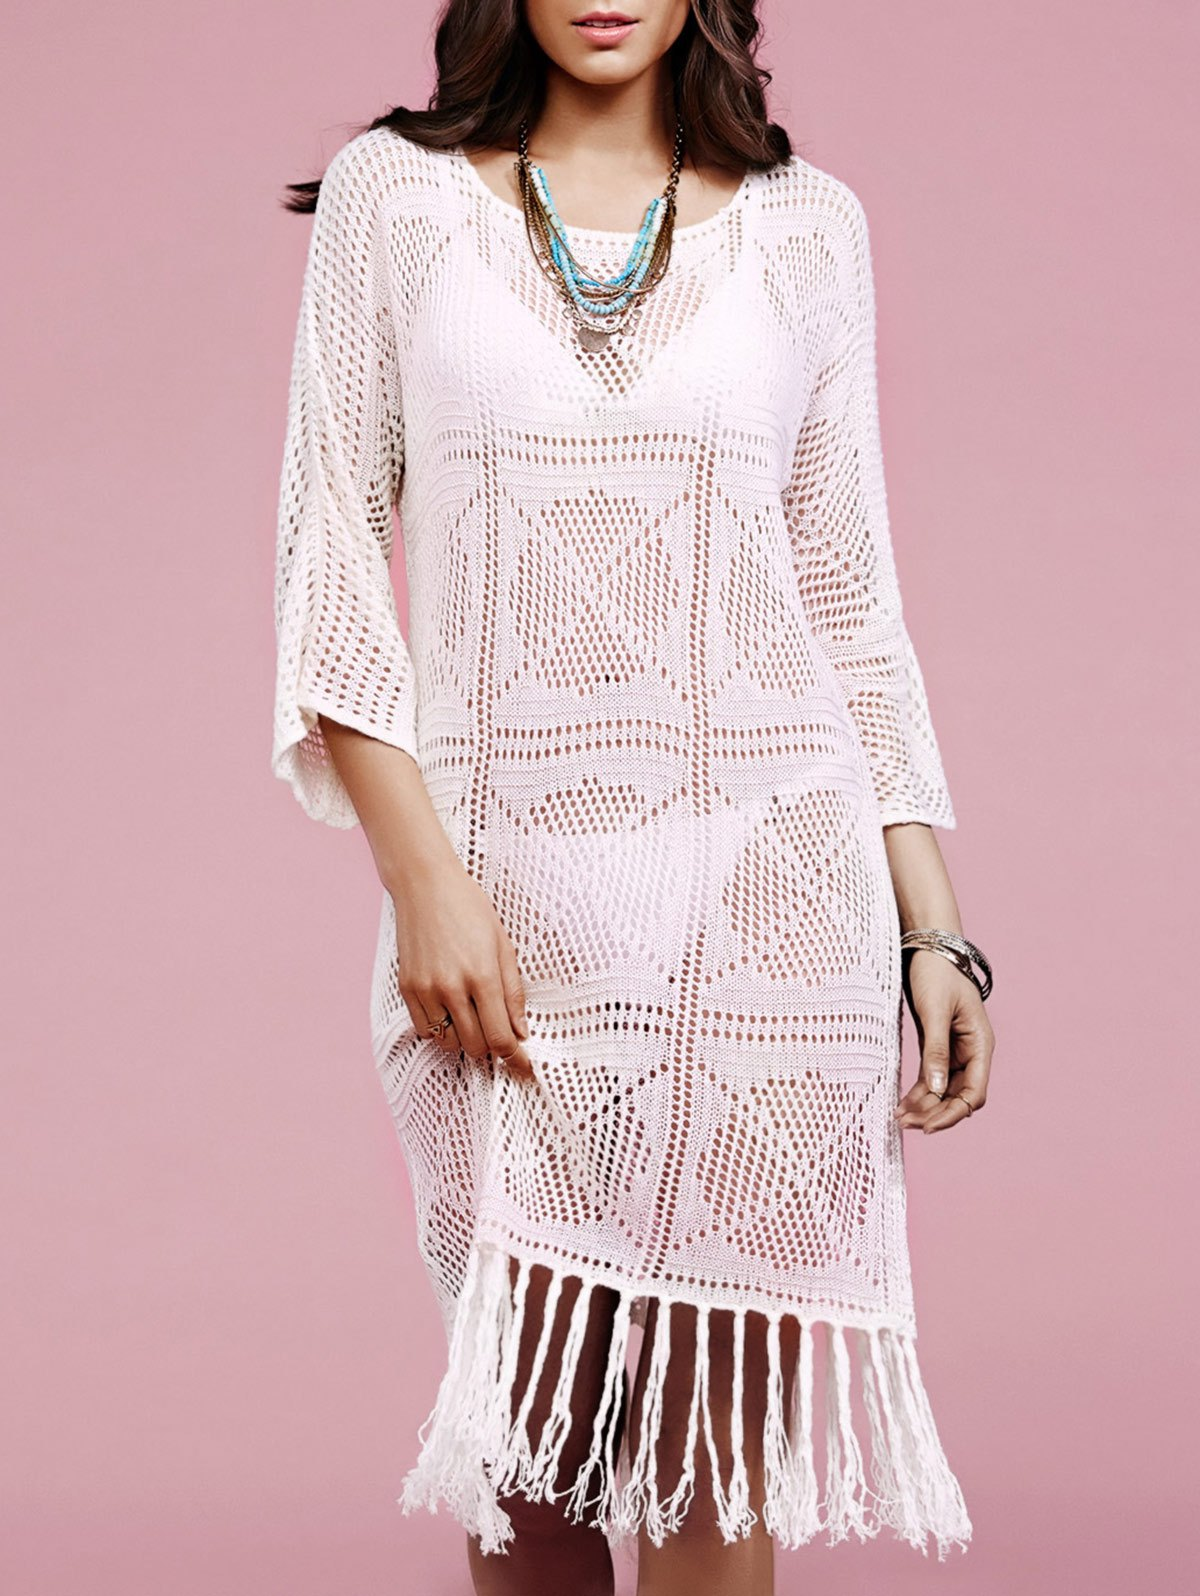 Round Neck Long Sleeve Solid Color Fringe Crochet Cover Up